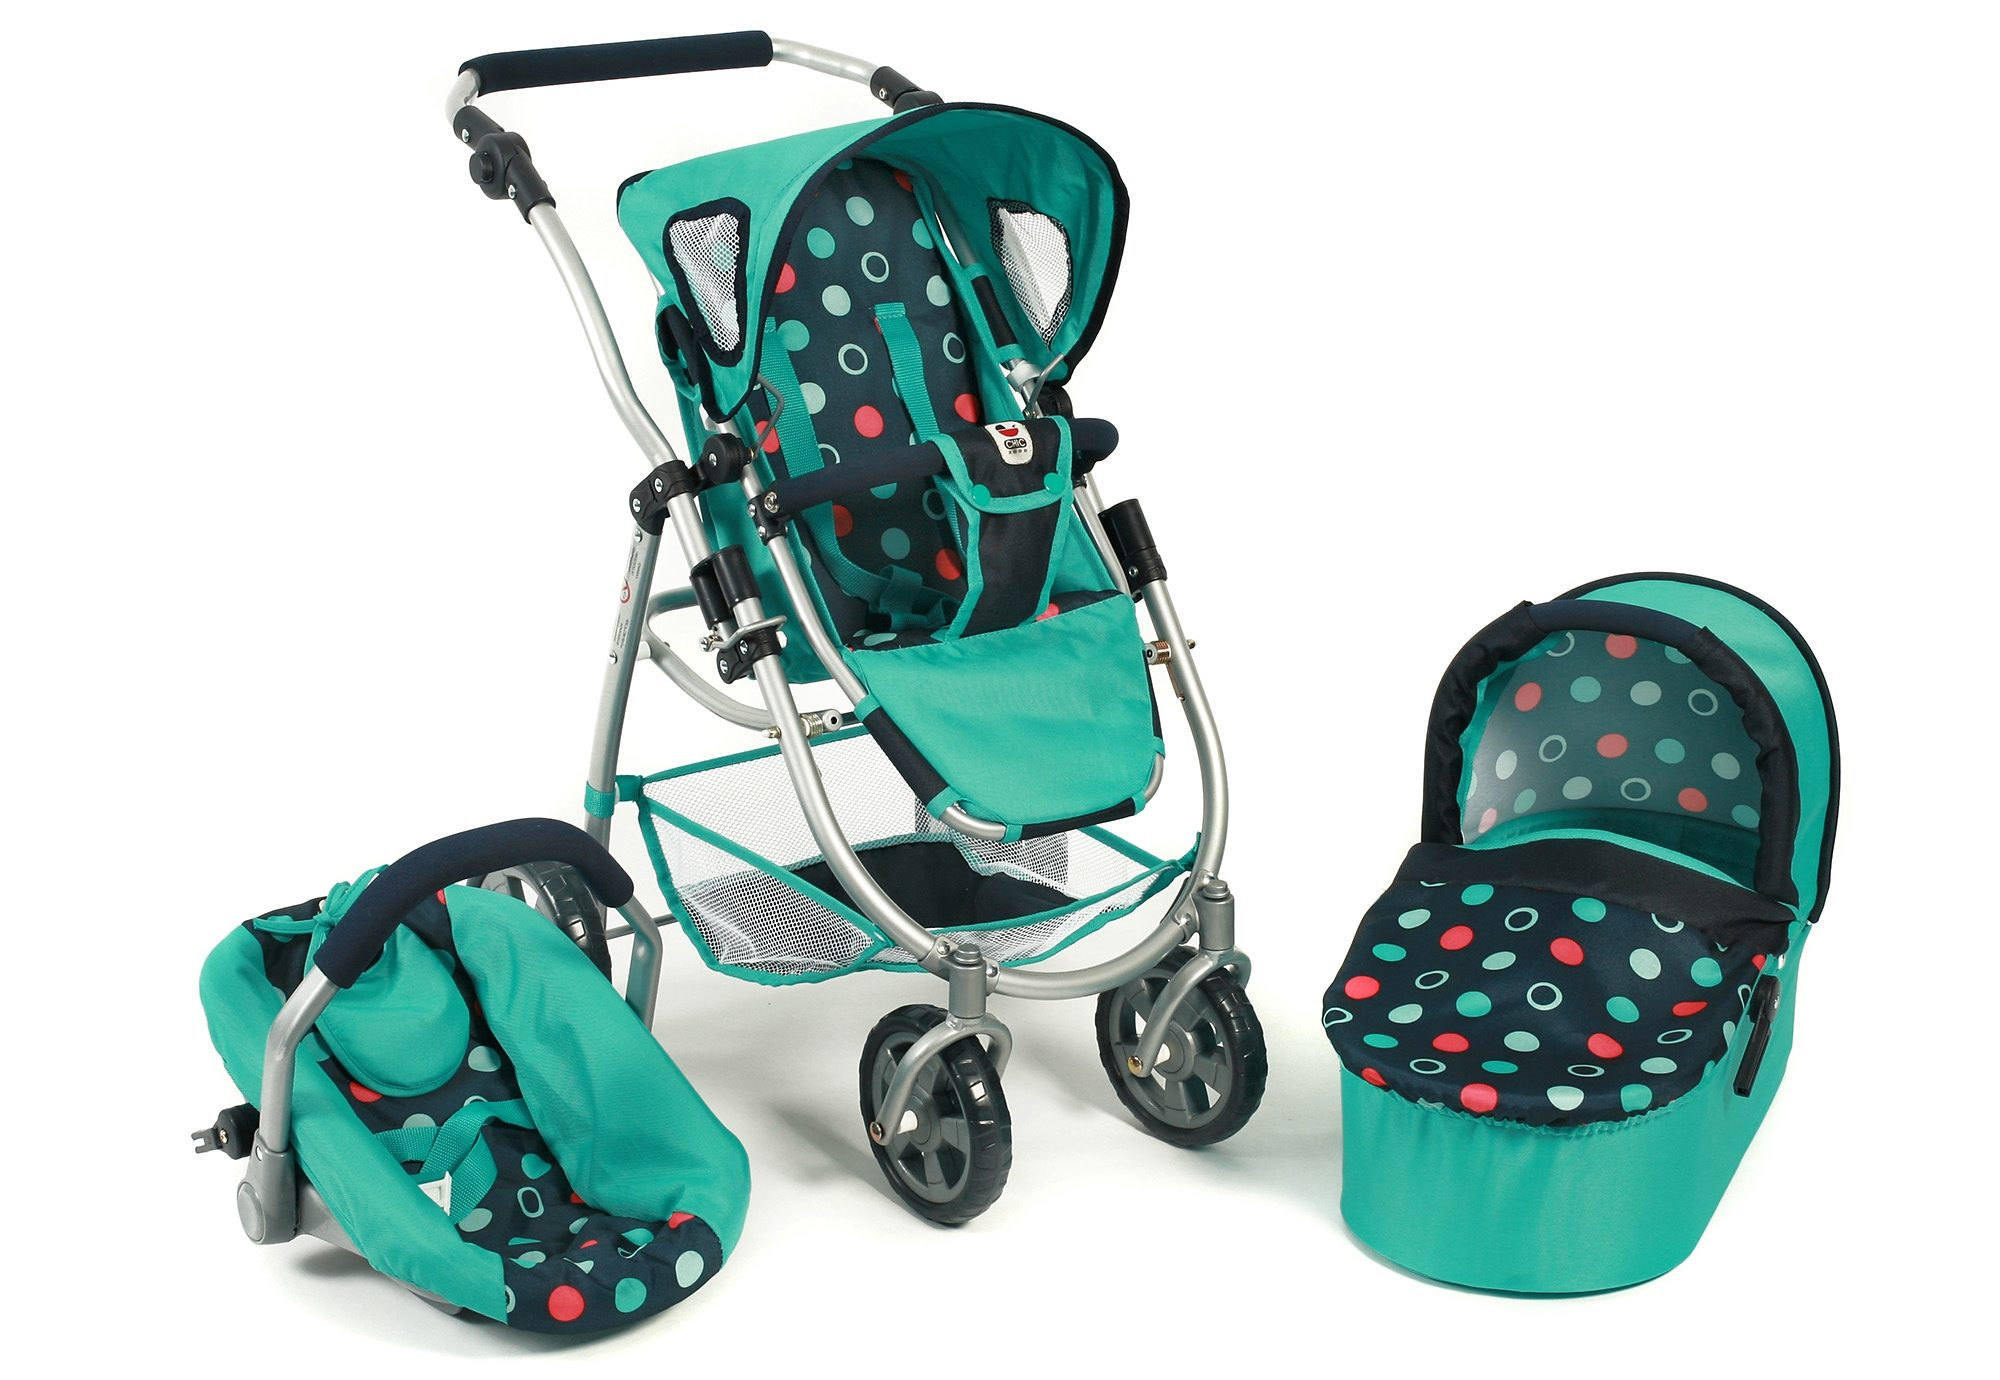 CHIC 2000 3-in-1 Puppenwagen, »Emotion all in, menta«